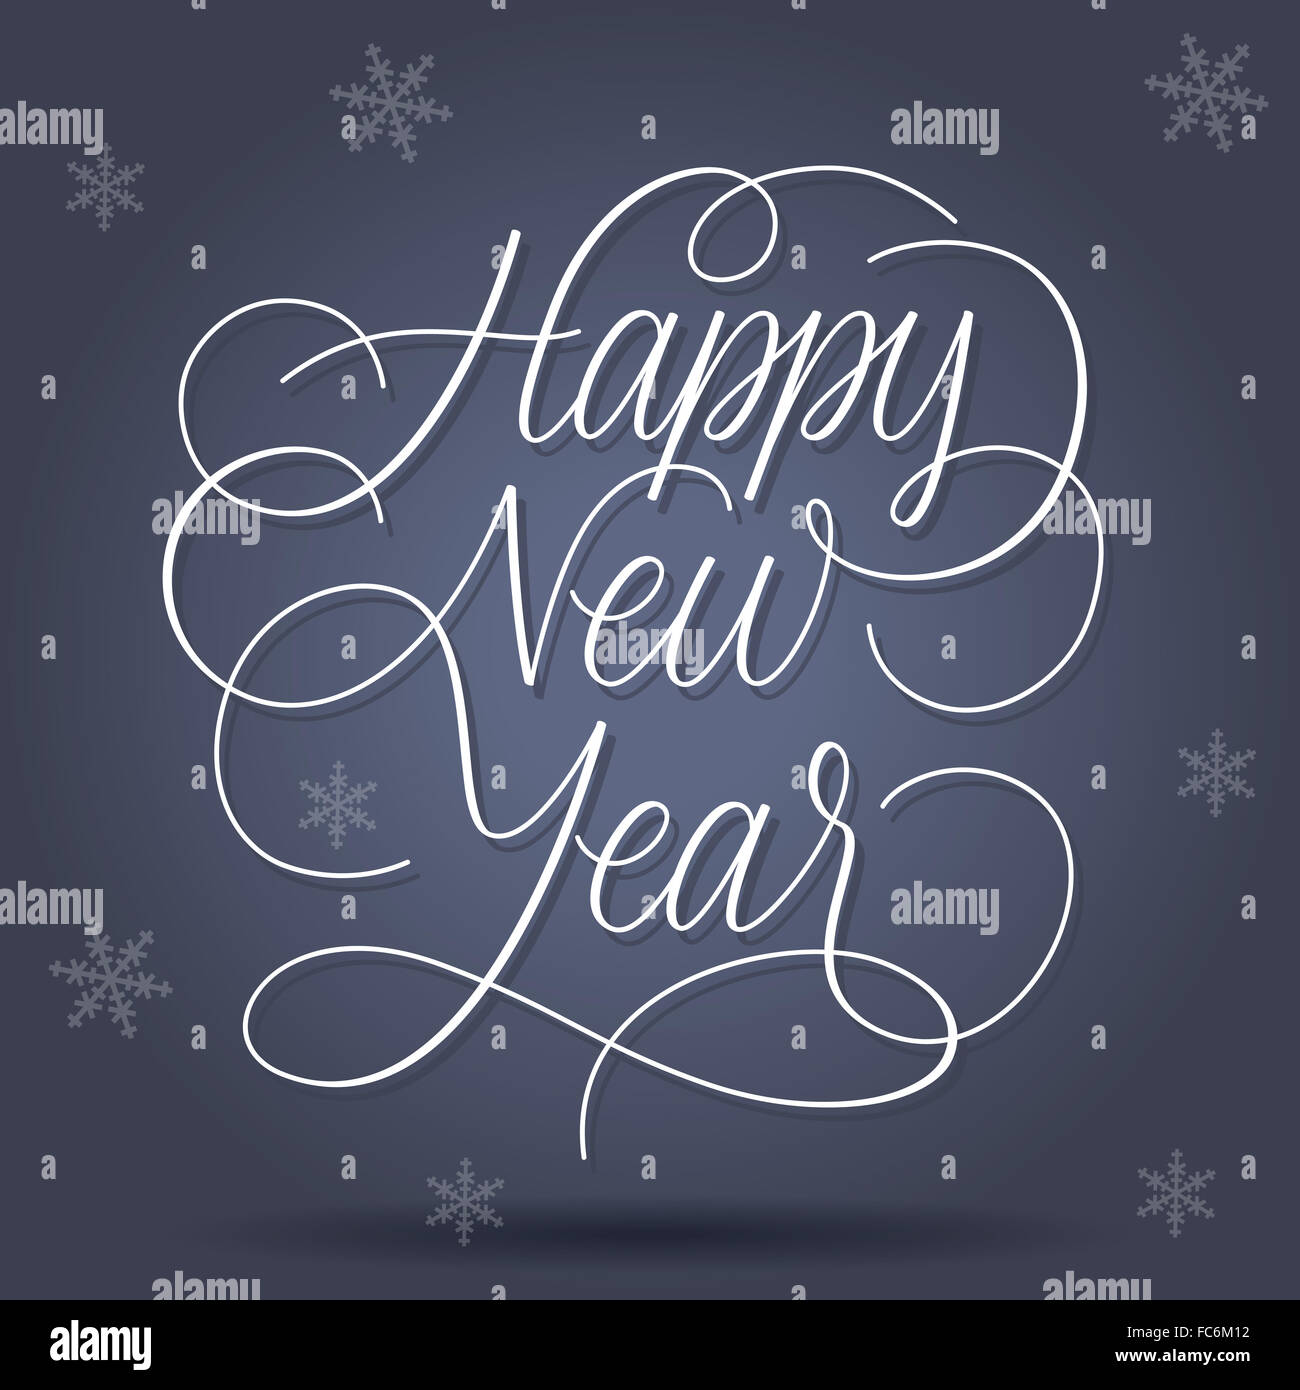 Happy New Year Greetings - Stock Image